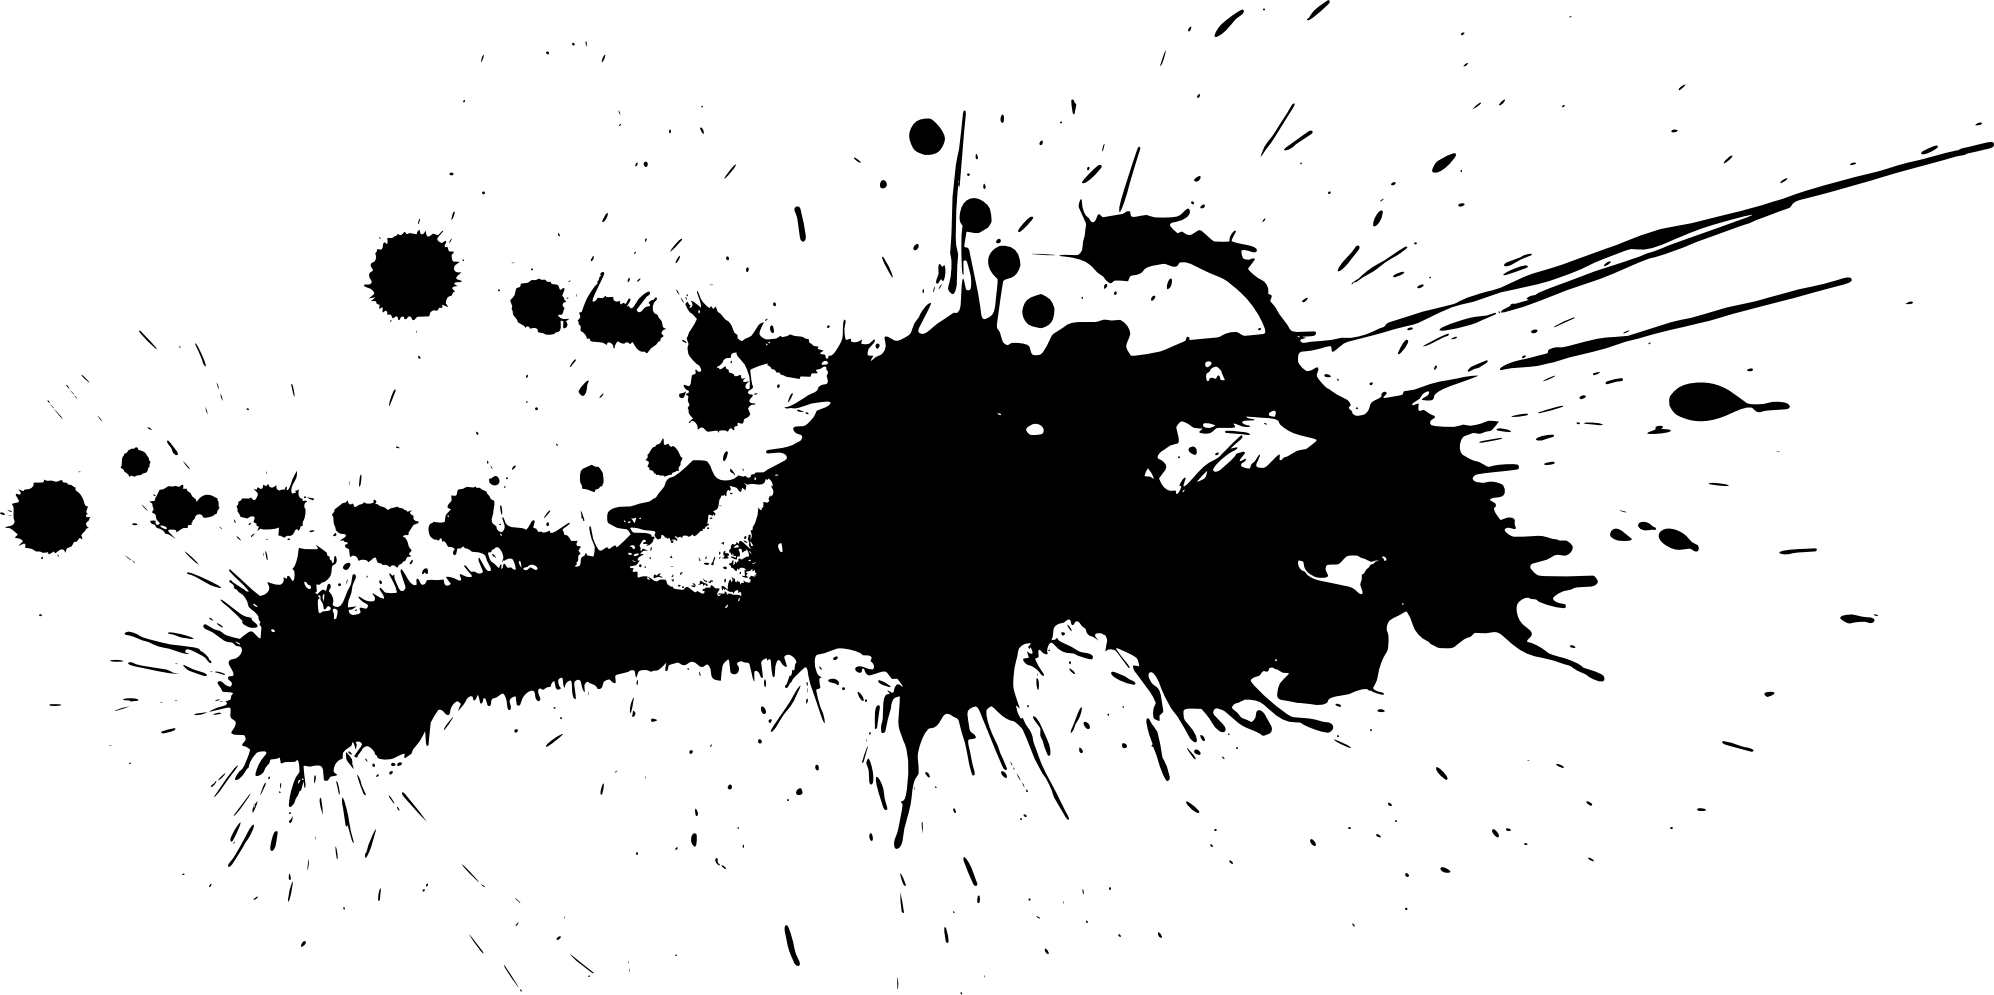 Paint splatter .png. Png transparent images splatterpng